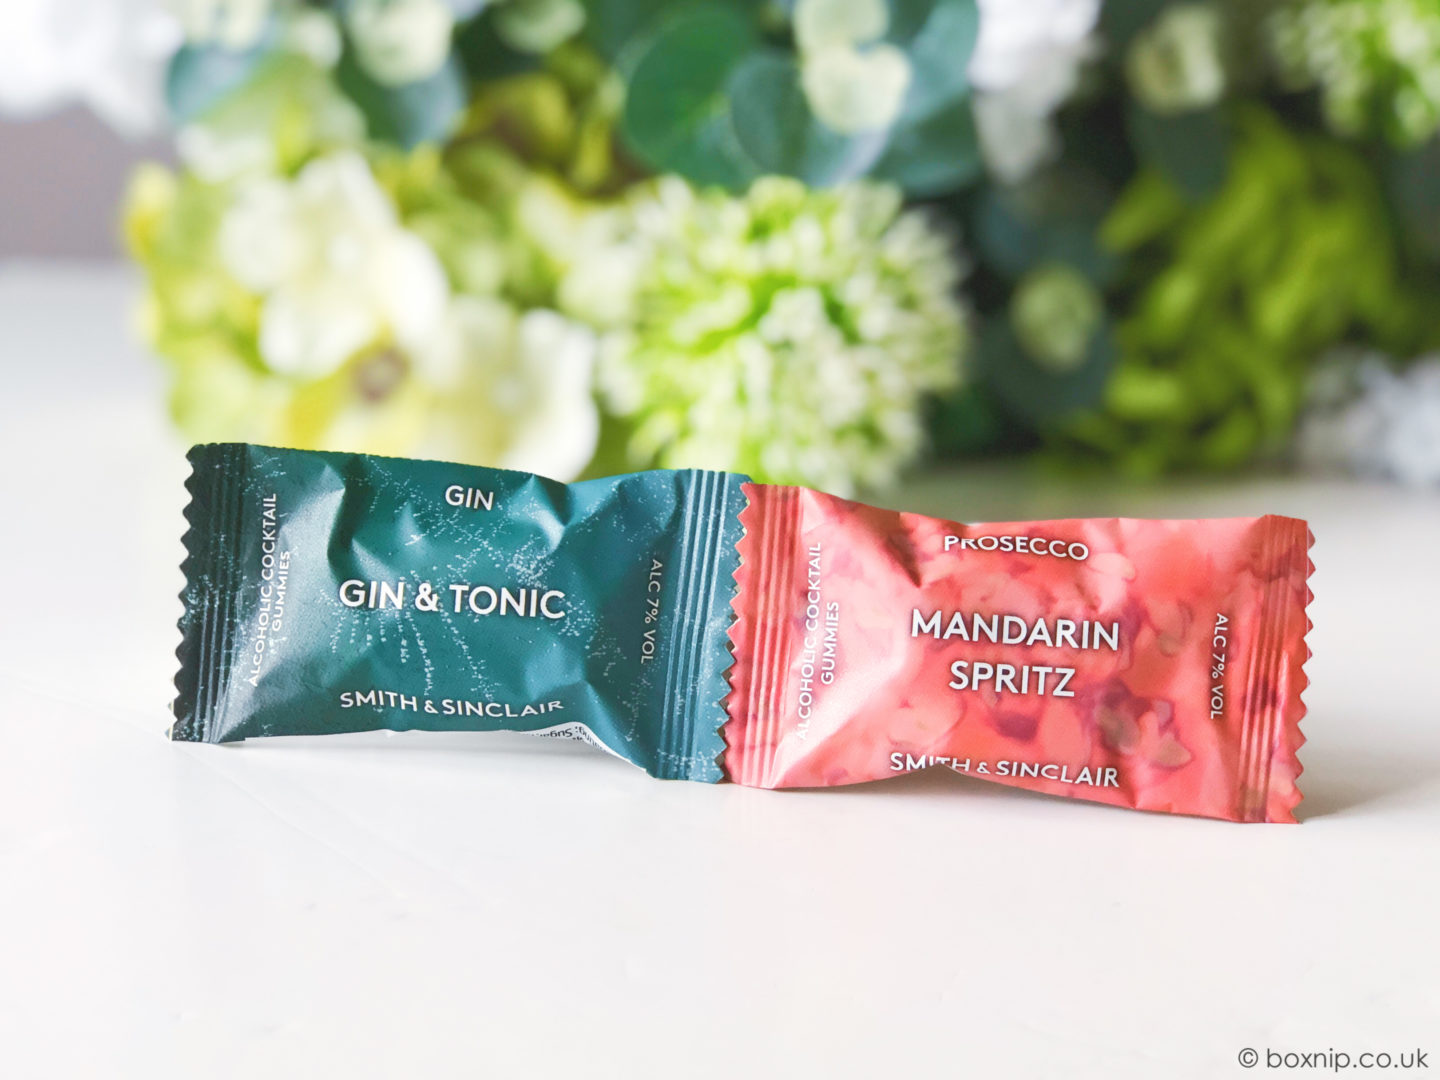 Smith & Sinclair Alcoholic Cocktail Gummies - June 2019 DegustaboxUK